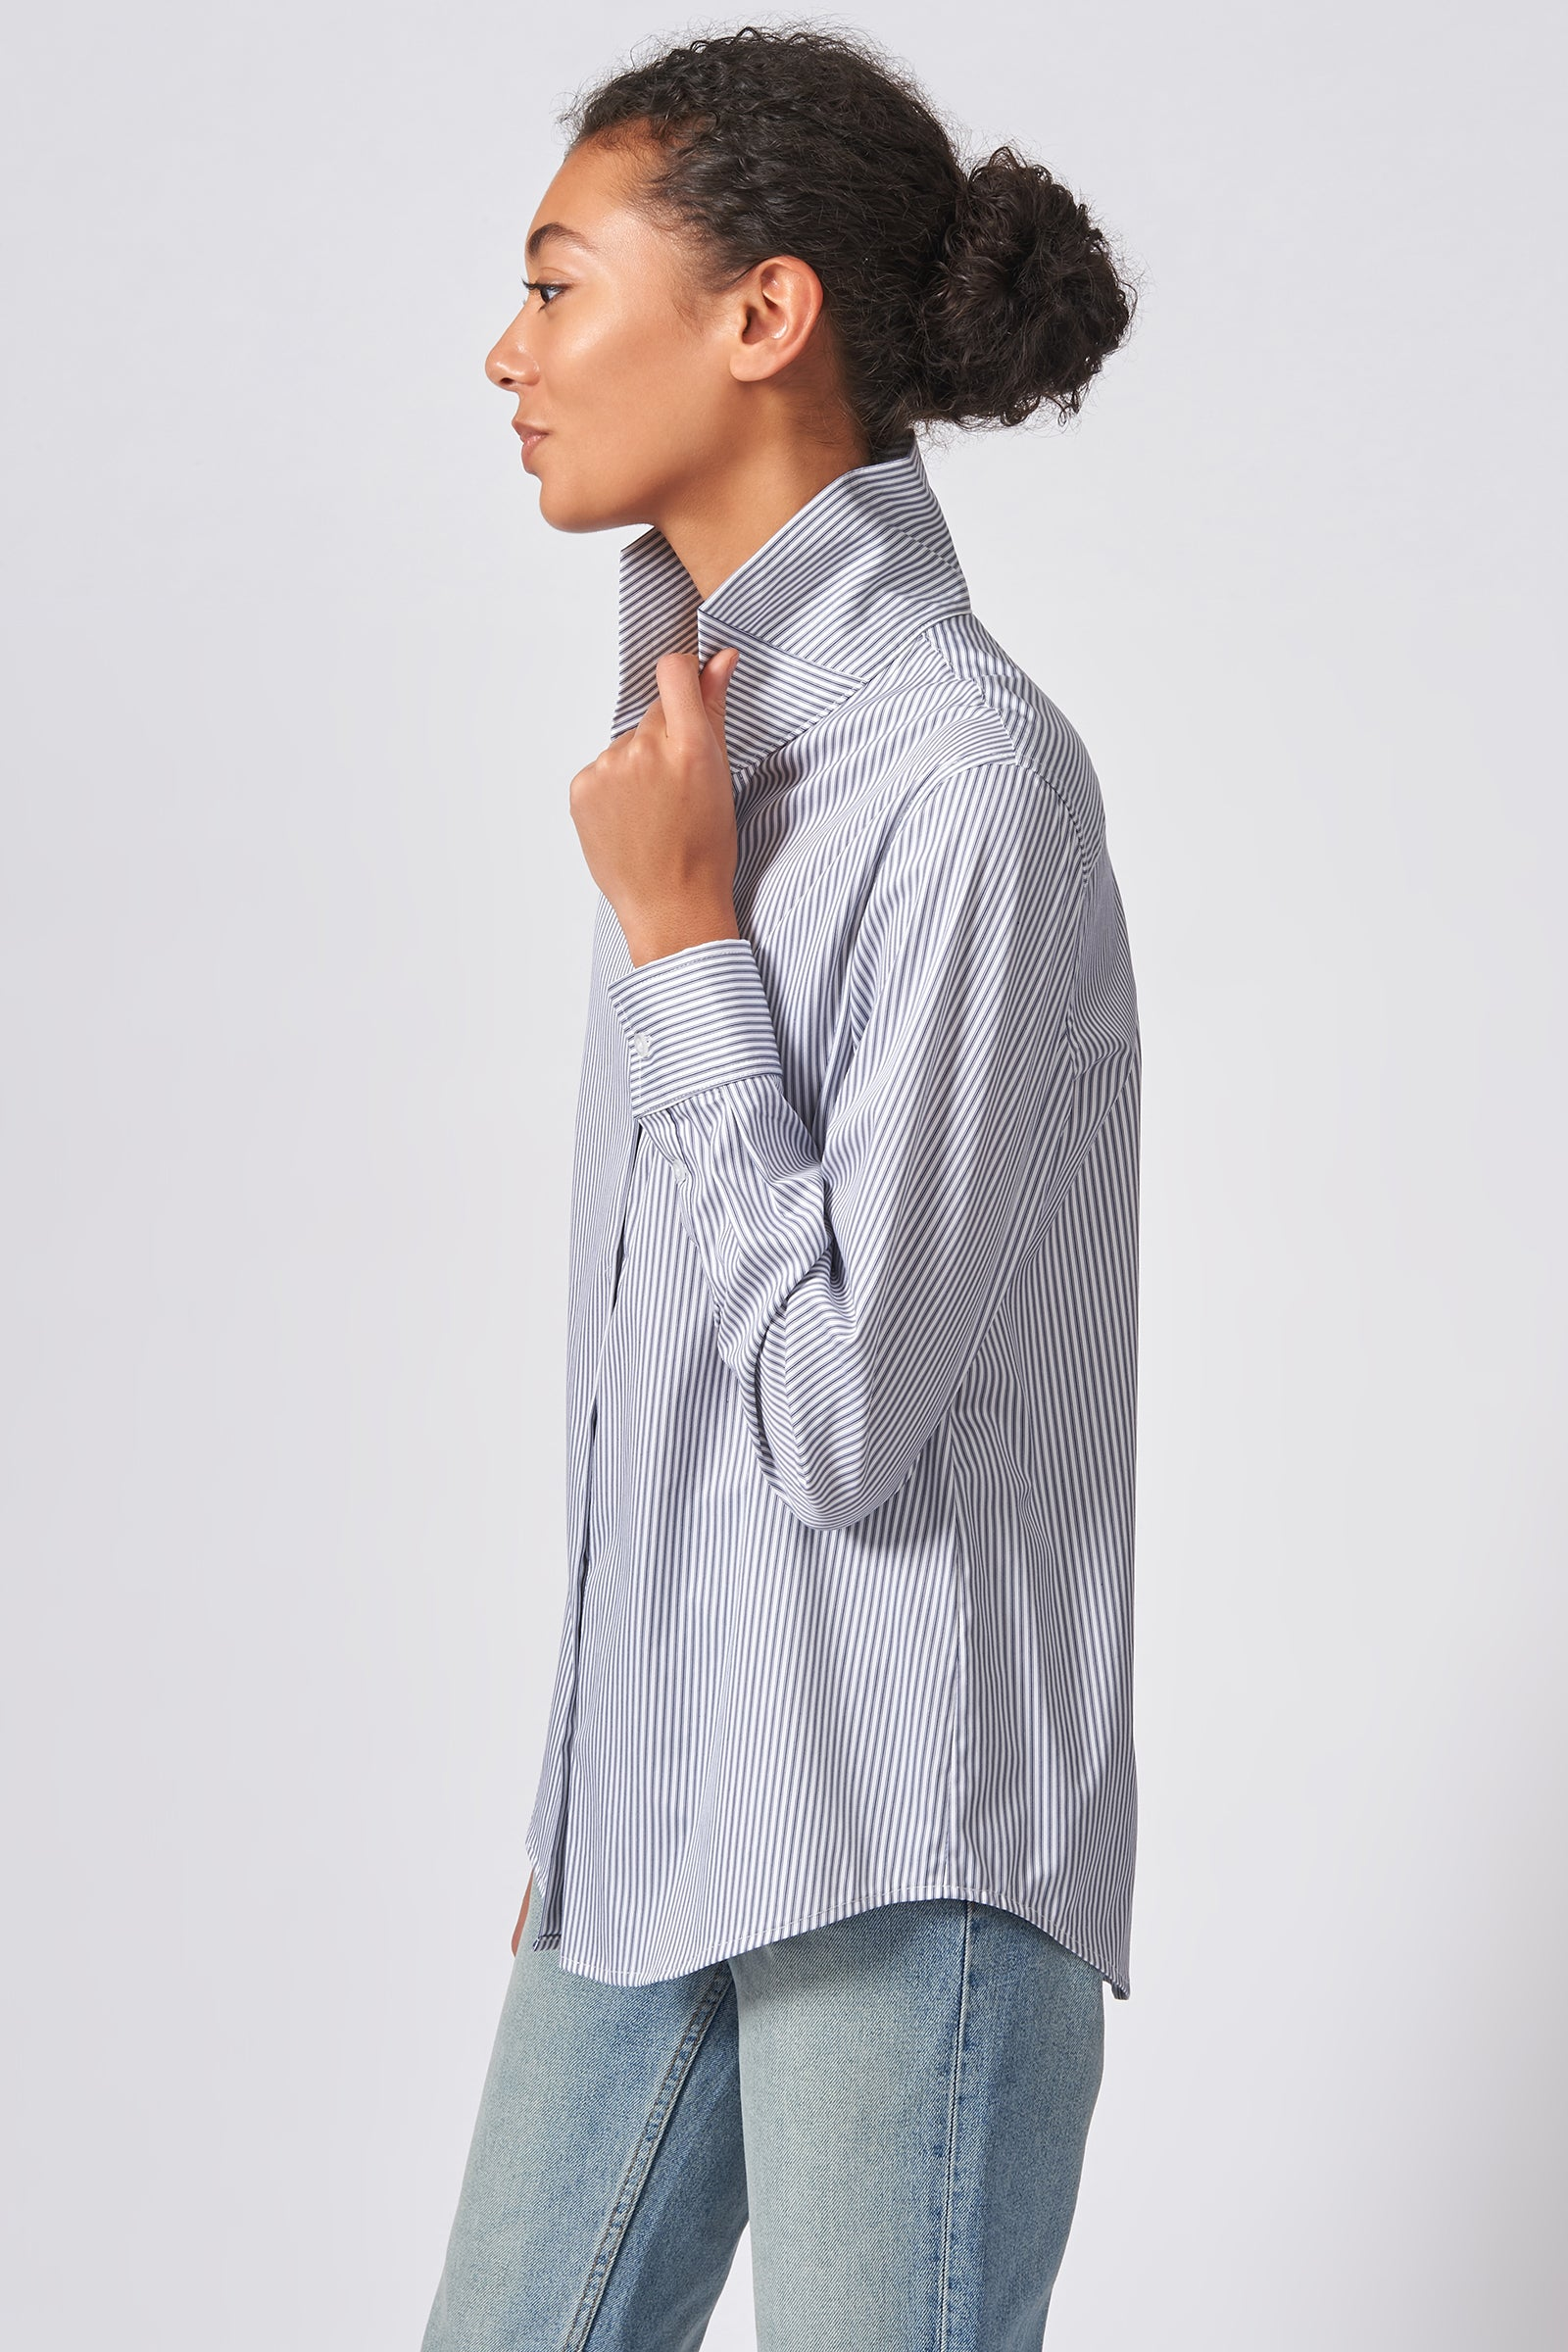 Kal Rieman Ginna Box Pleat Tailored Shirt in Navy Stripe Stretch on Model Side View